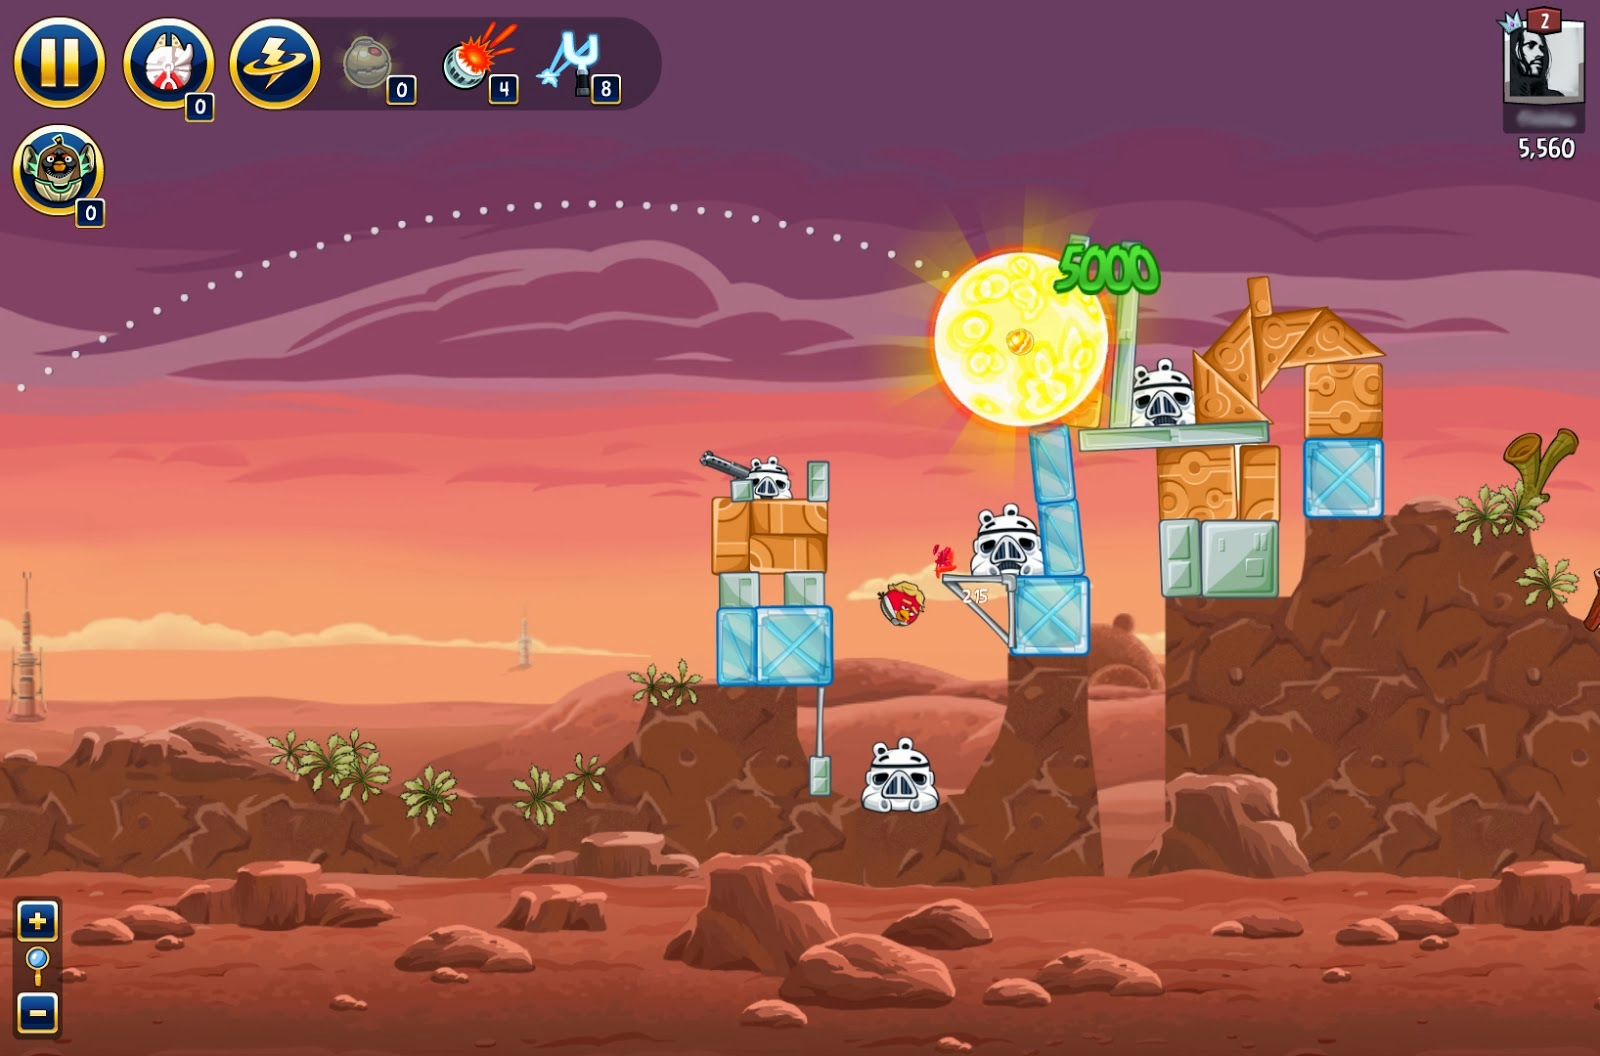 Free Download Angry Birds Star Wars Full Pc Game Top